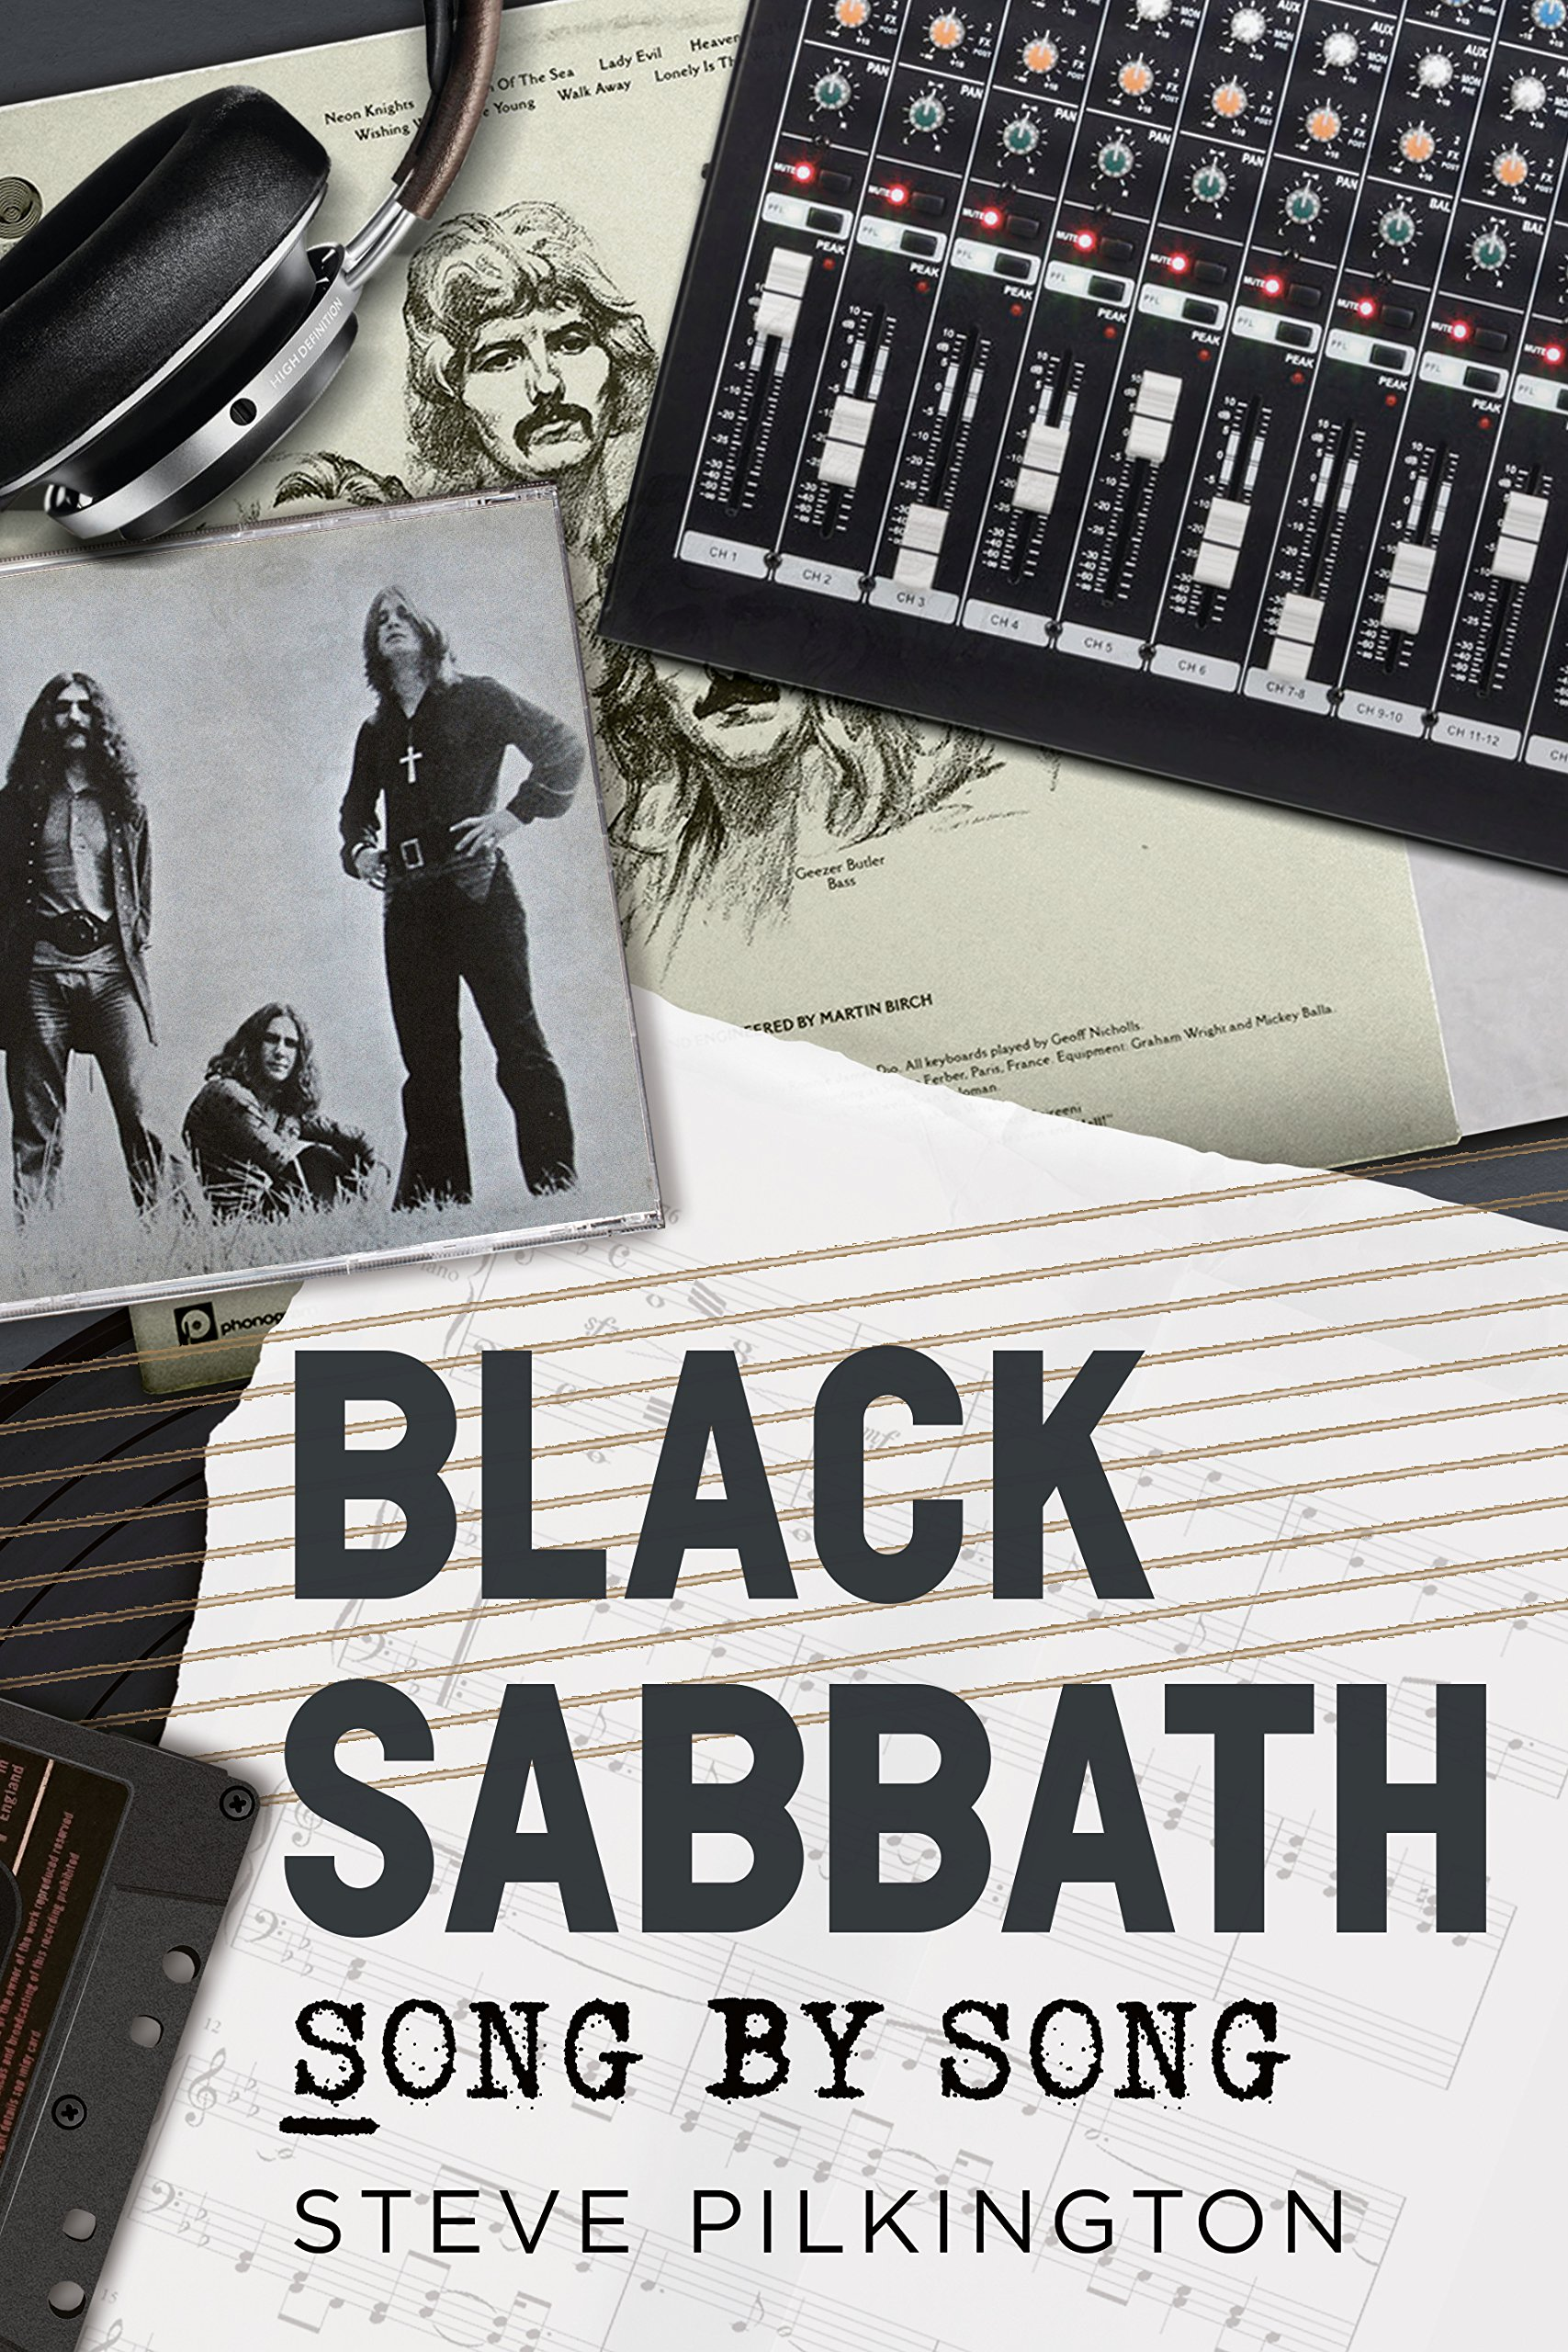 Black Sabbath: Song by Song ePub fb2 book